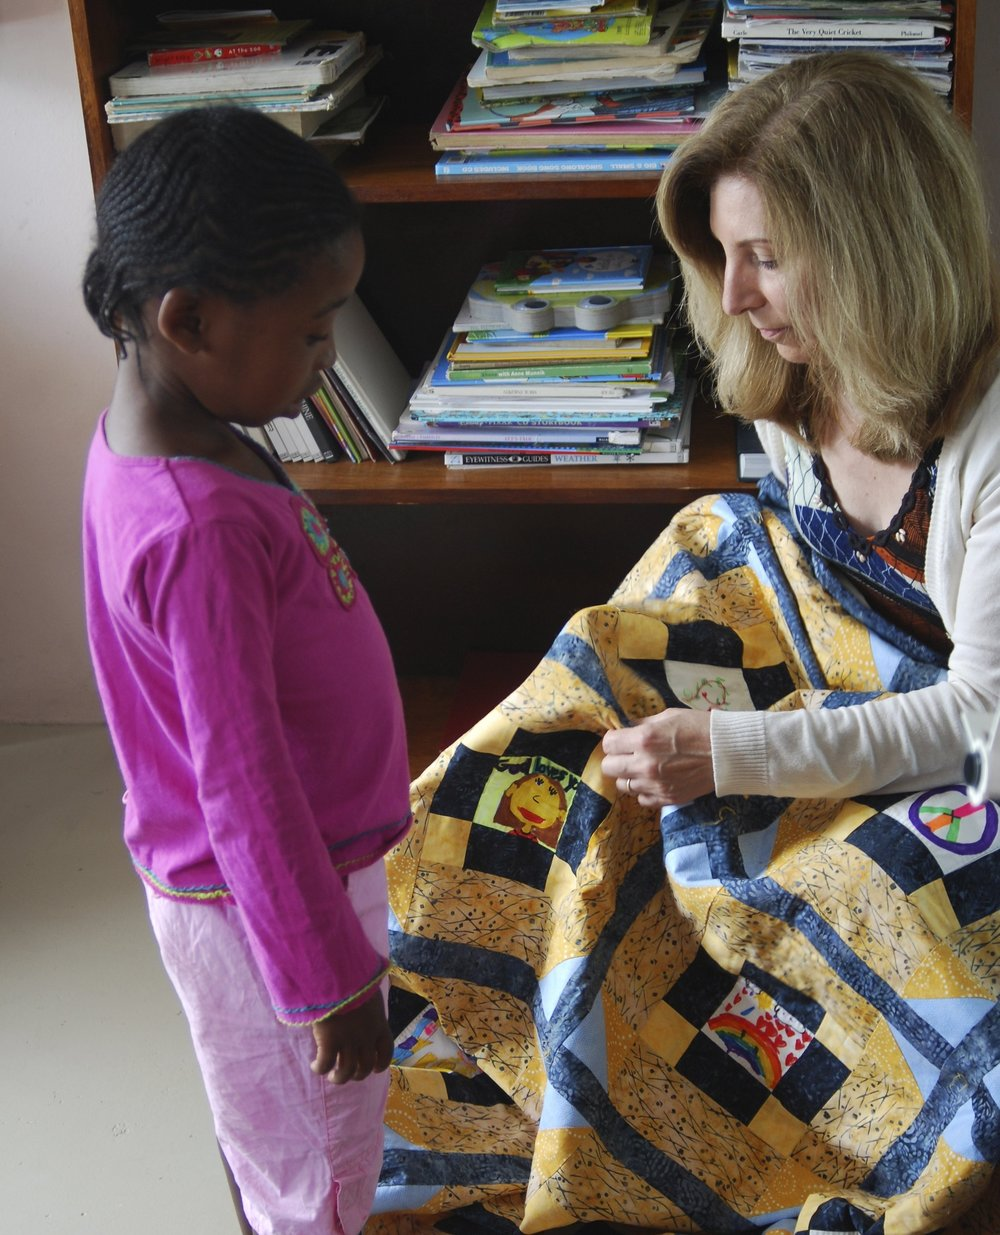 ABOUT US - The Love Quilt Project is changing the lives of vulnerable and orphaned South African children, many of them affected by the HIV / AIDS pandemic. We build relationships between American and South African children by funding education that teaches lessons on kindness, tolerance, and compassion to both groups.American children express what they have learned by drawing messages of love on small fabric squares that are stitched into quilts and distributed to children in South Africa's hardest hit communities. In return, the recipients also create art squares for quilts to be given to American children affected by HIV / AIDS. Love is the Common Thread will celebrate the thousands of children we have reached in both South Africa and the US, while raising the necessary funds to provide programs to more vulnerable children affected by the HIV / AIDS epidemic.